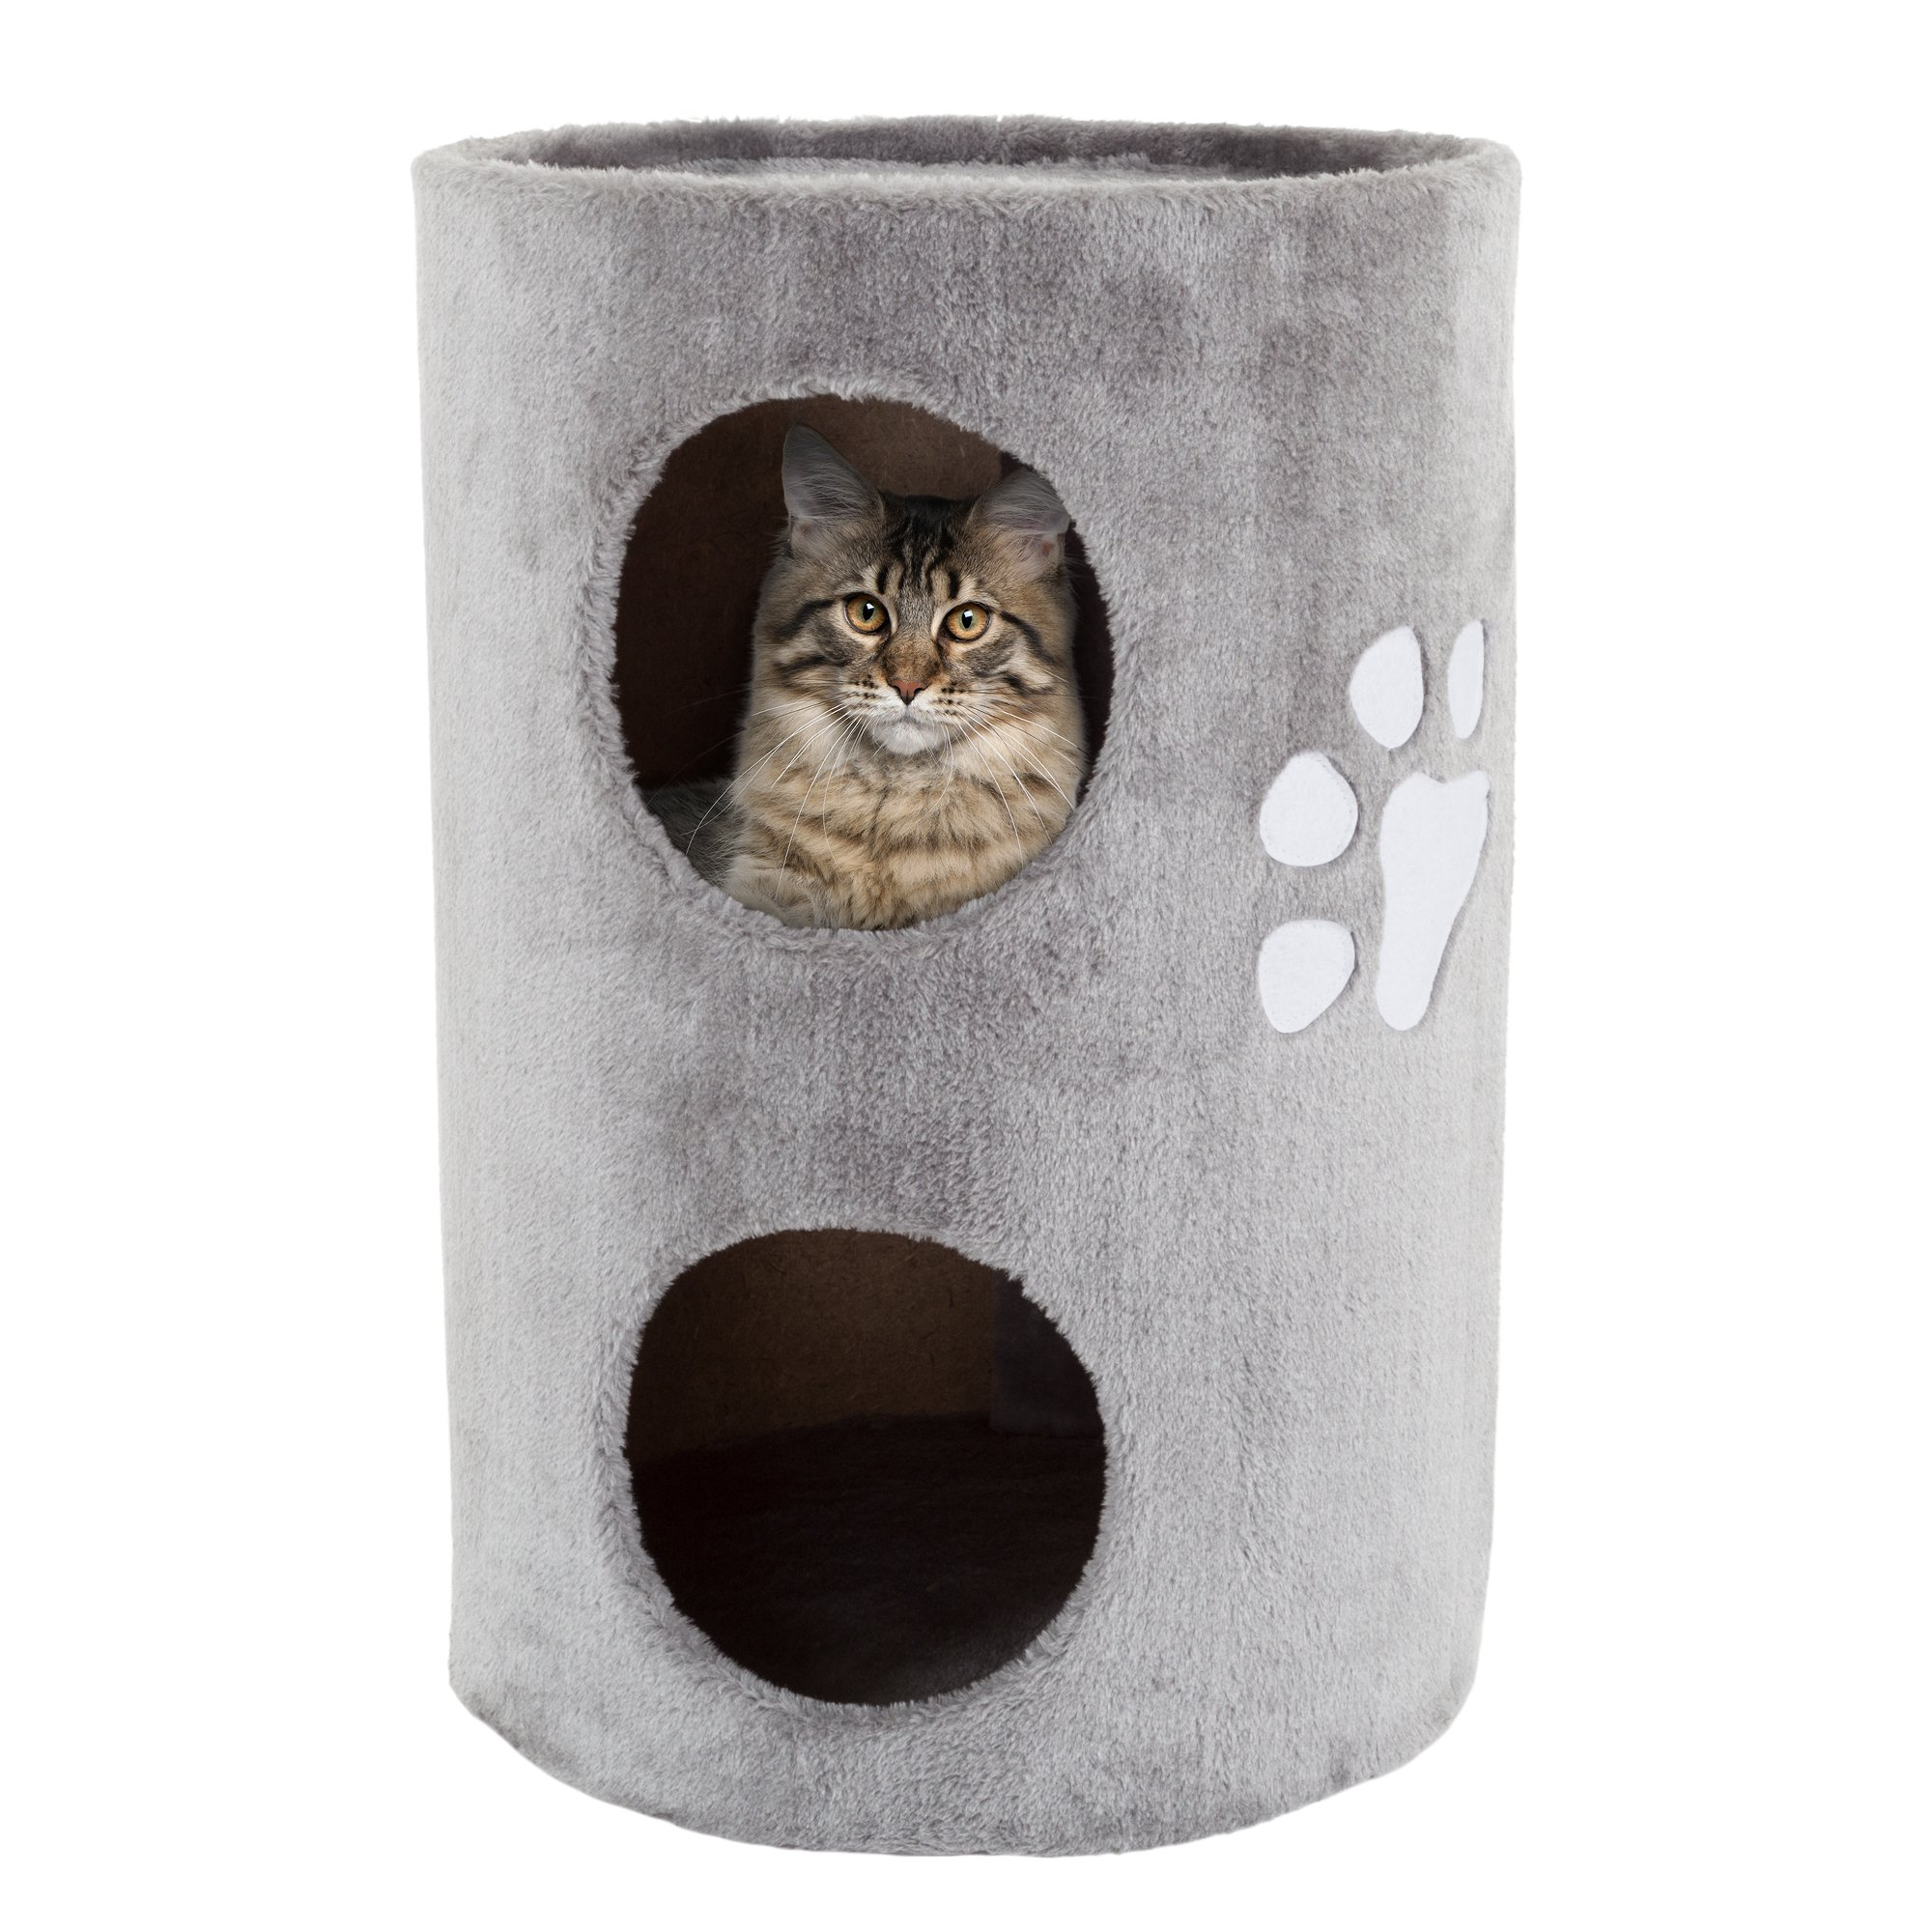 PETMAKER Cat Condo 2 Story Double Hole with Scratching Surface, 14'' x 20.5'', Gray